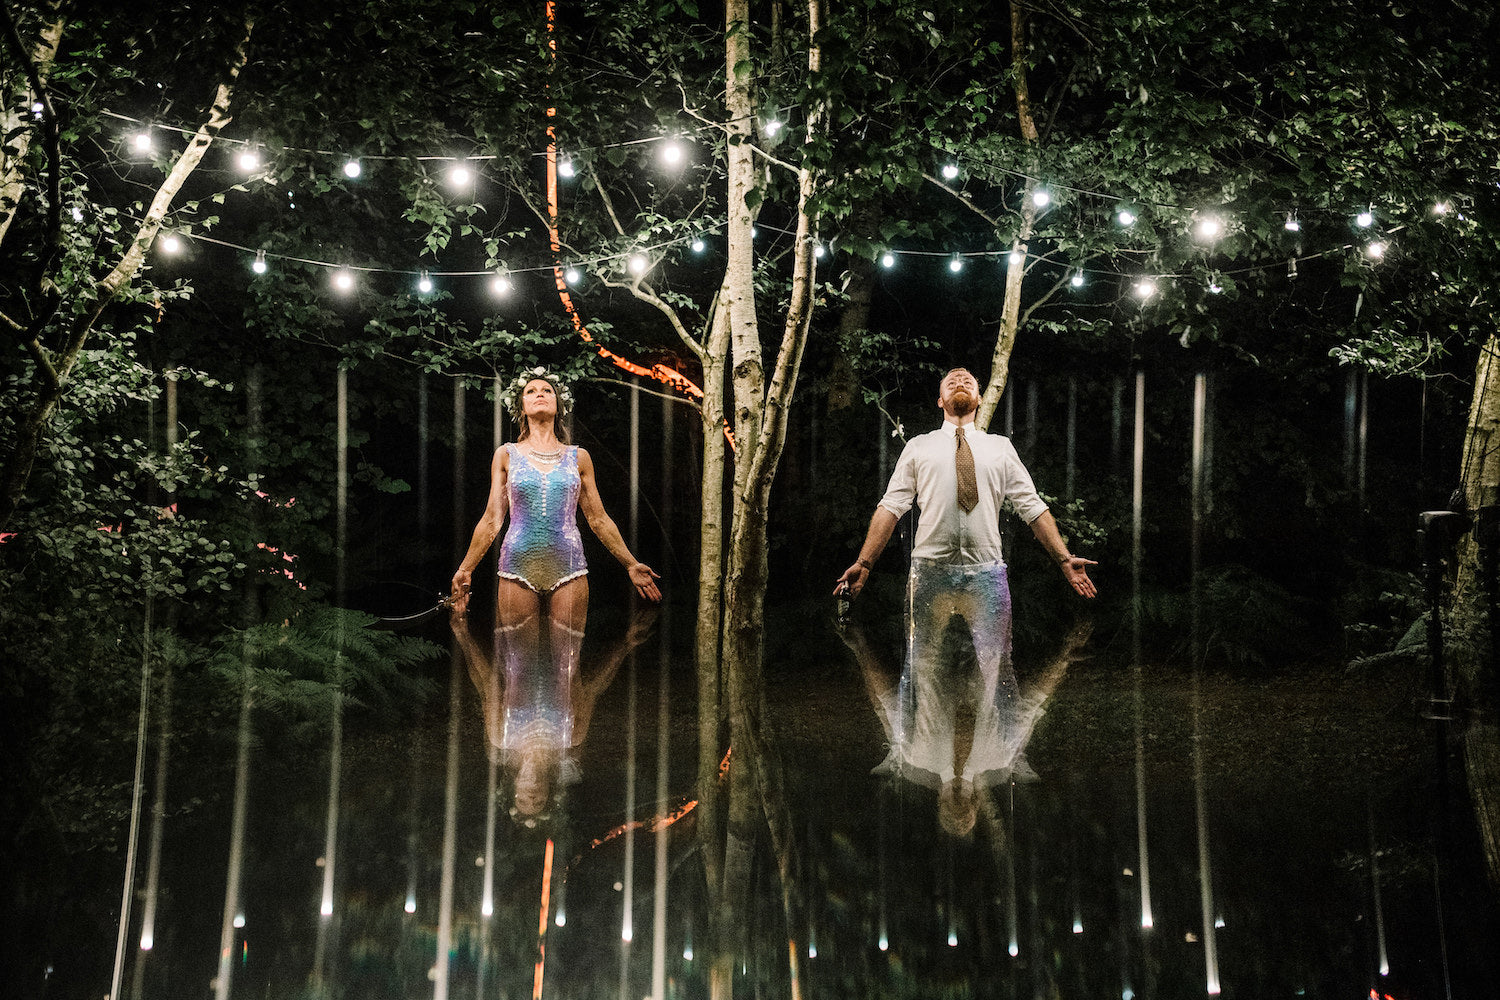 Bride and Groom wearing matching white sequin outfits stand with their arms open under fairy lights.